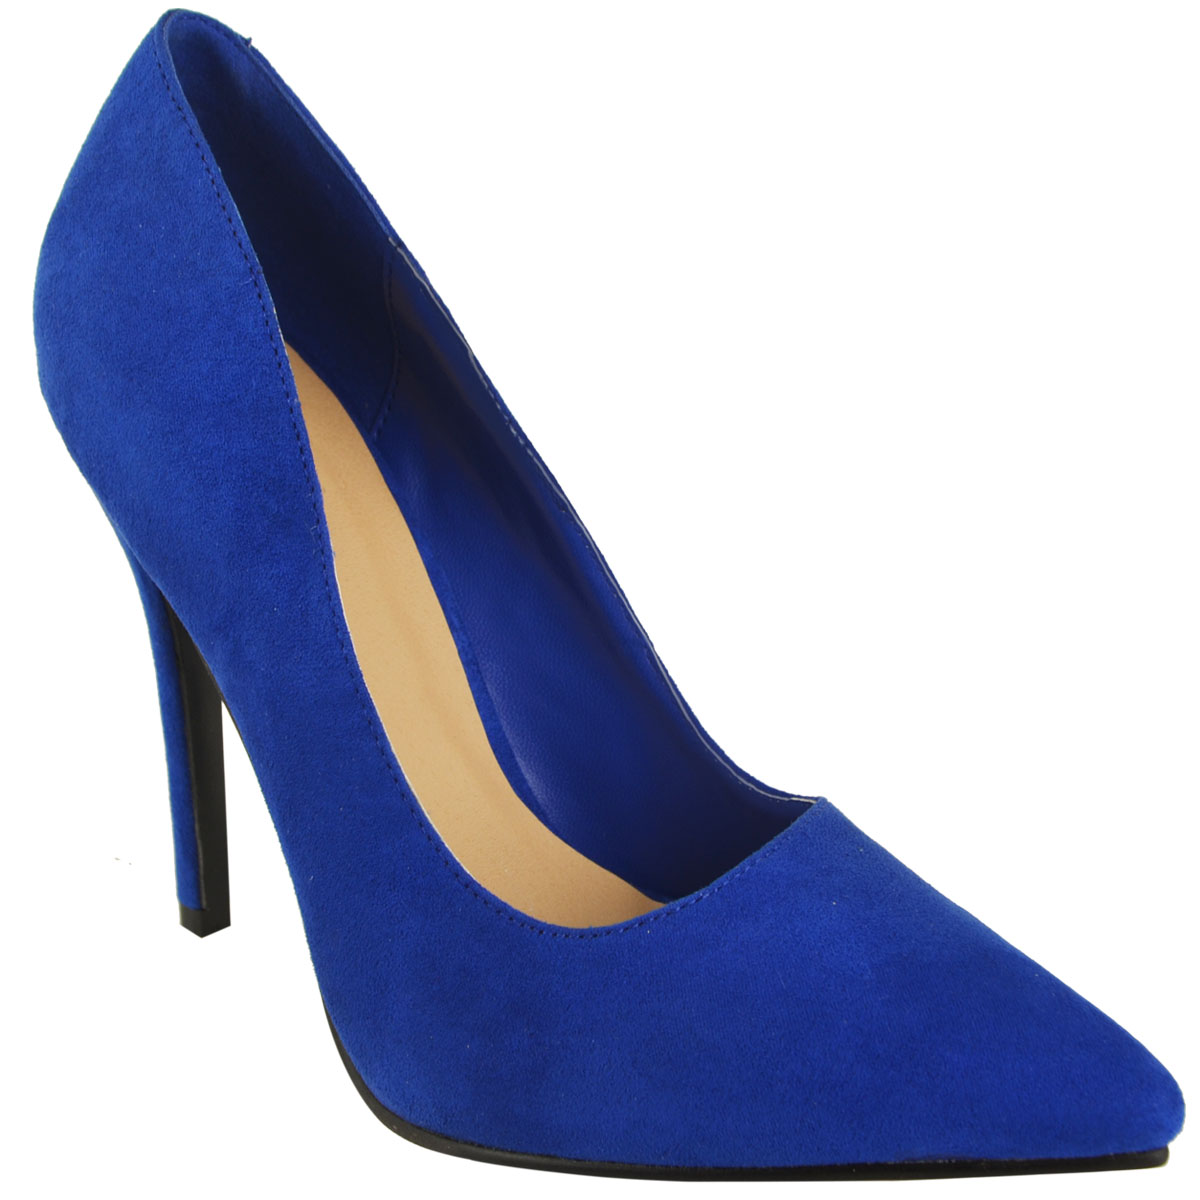 WOMENS LADIES HIGH STILETTO HEEL OFFICE WORK PROM PARTY POINTED COURT SHOES SIZE